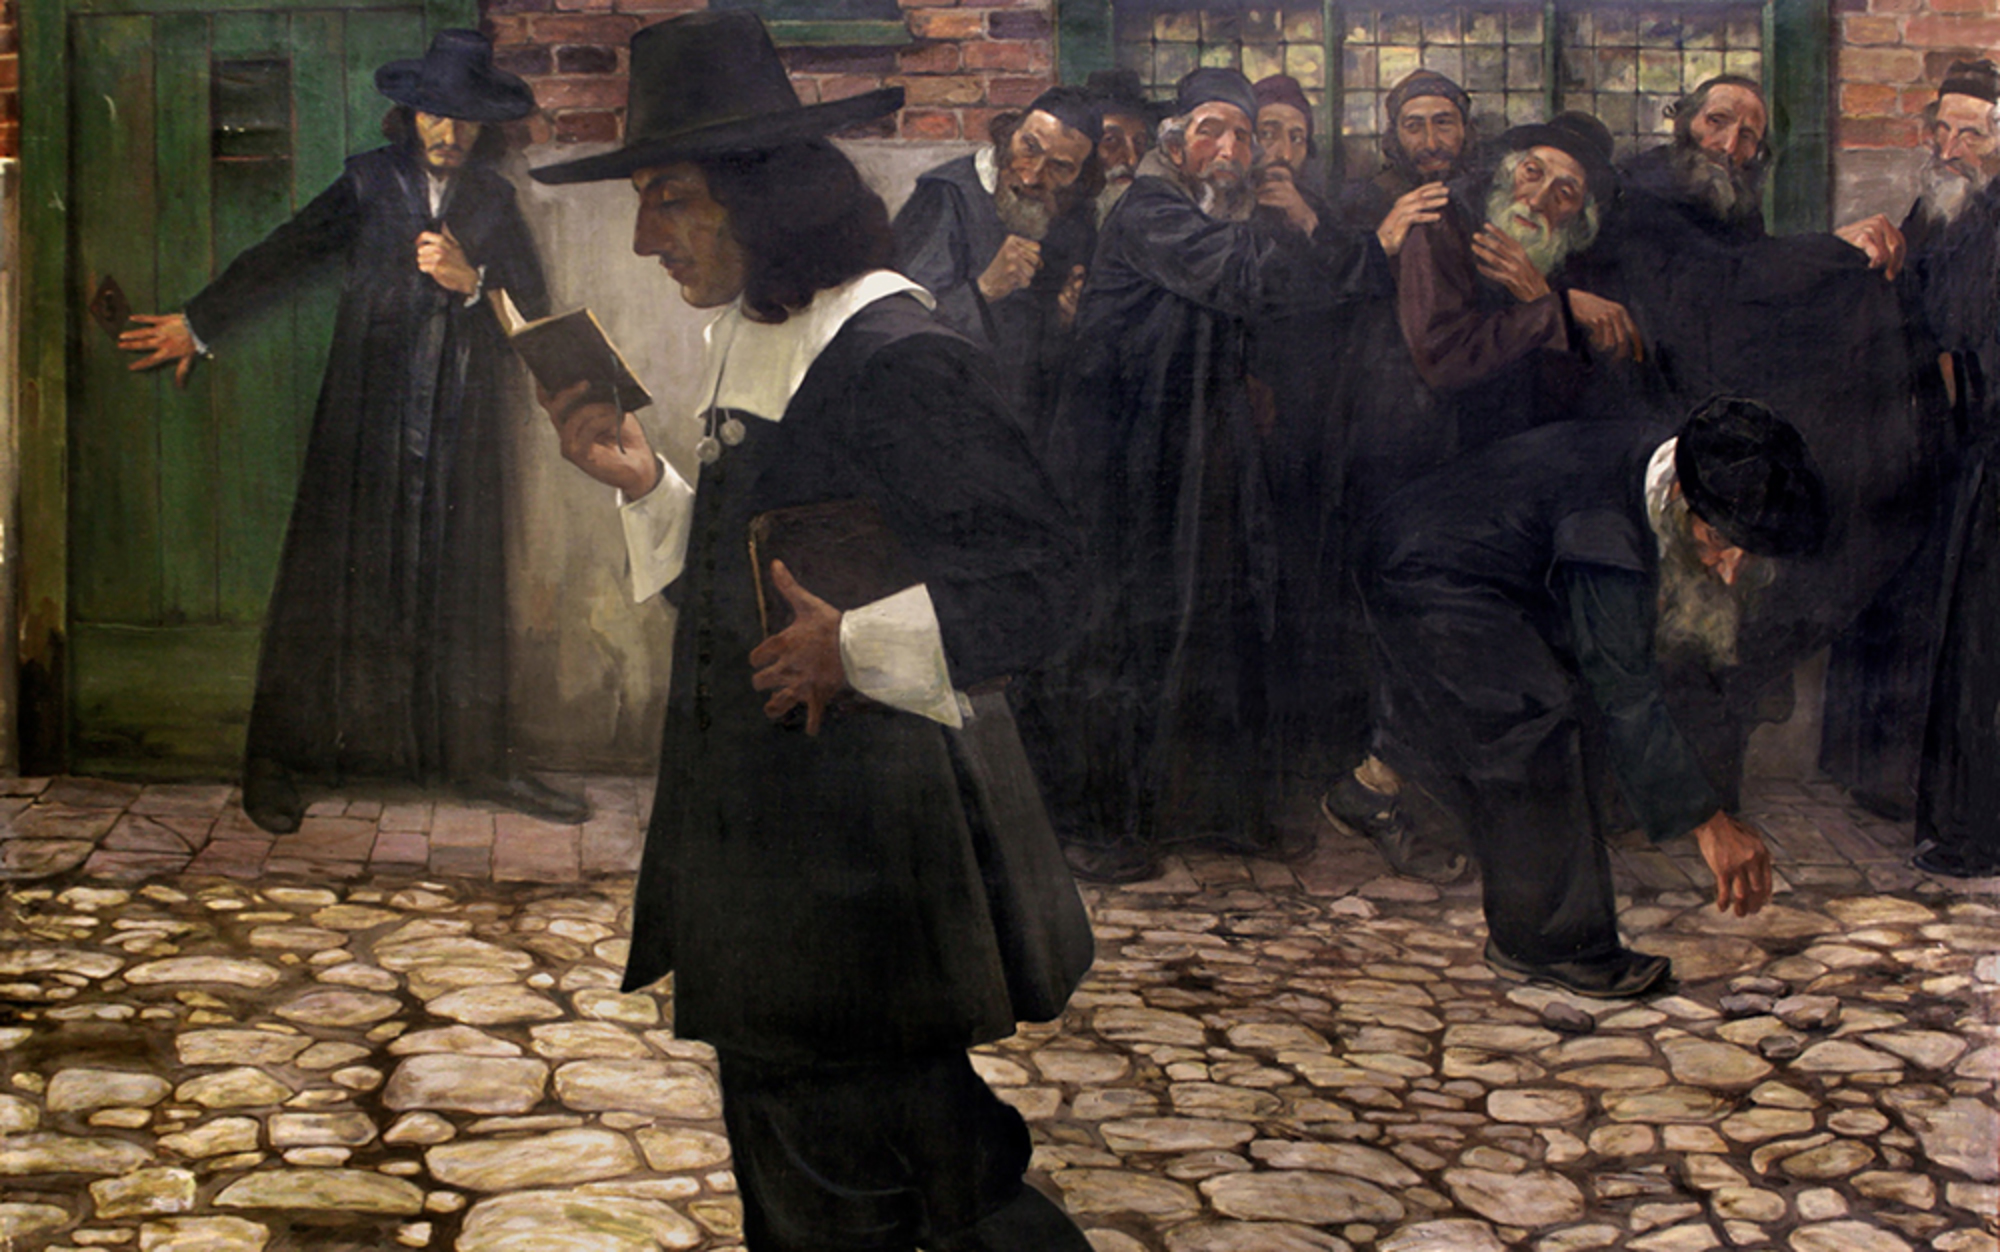 at a time of zealotry spinoza matters more than ever essays